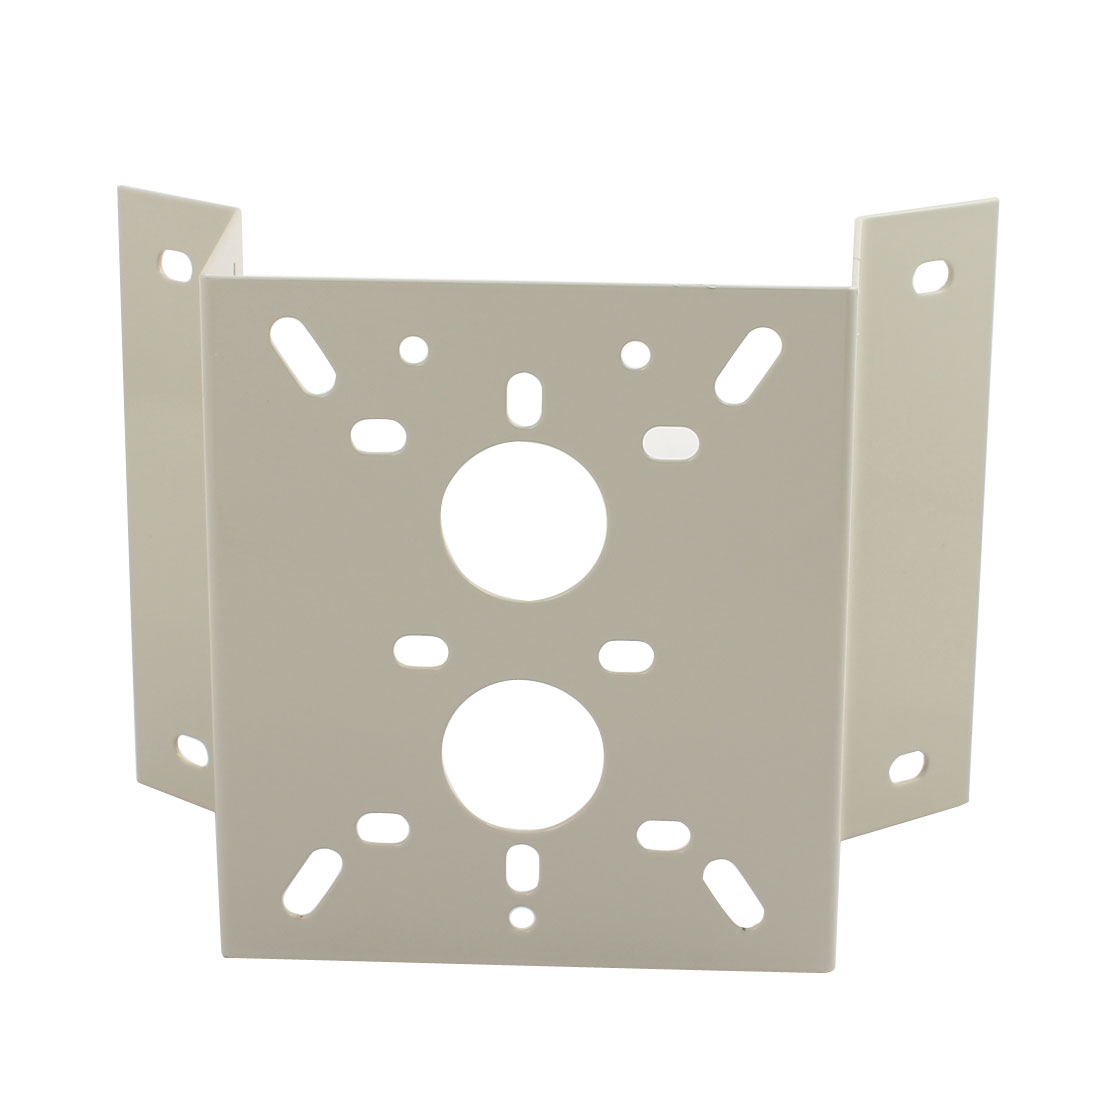 Trapezoid CCTV Security Camera Aluminum Alloy Wall Mount Stand Bracket